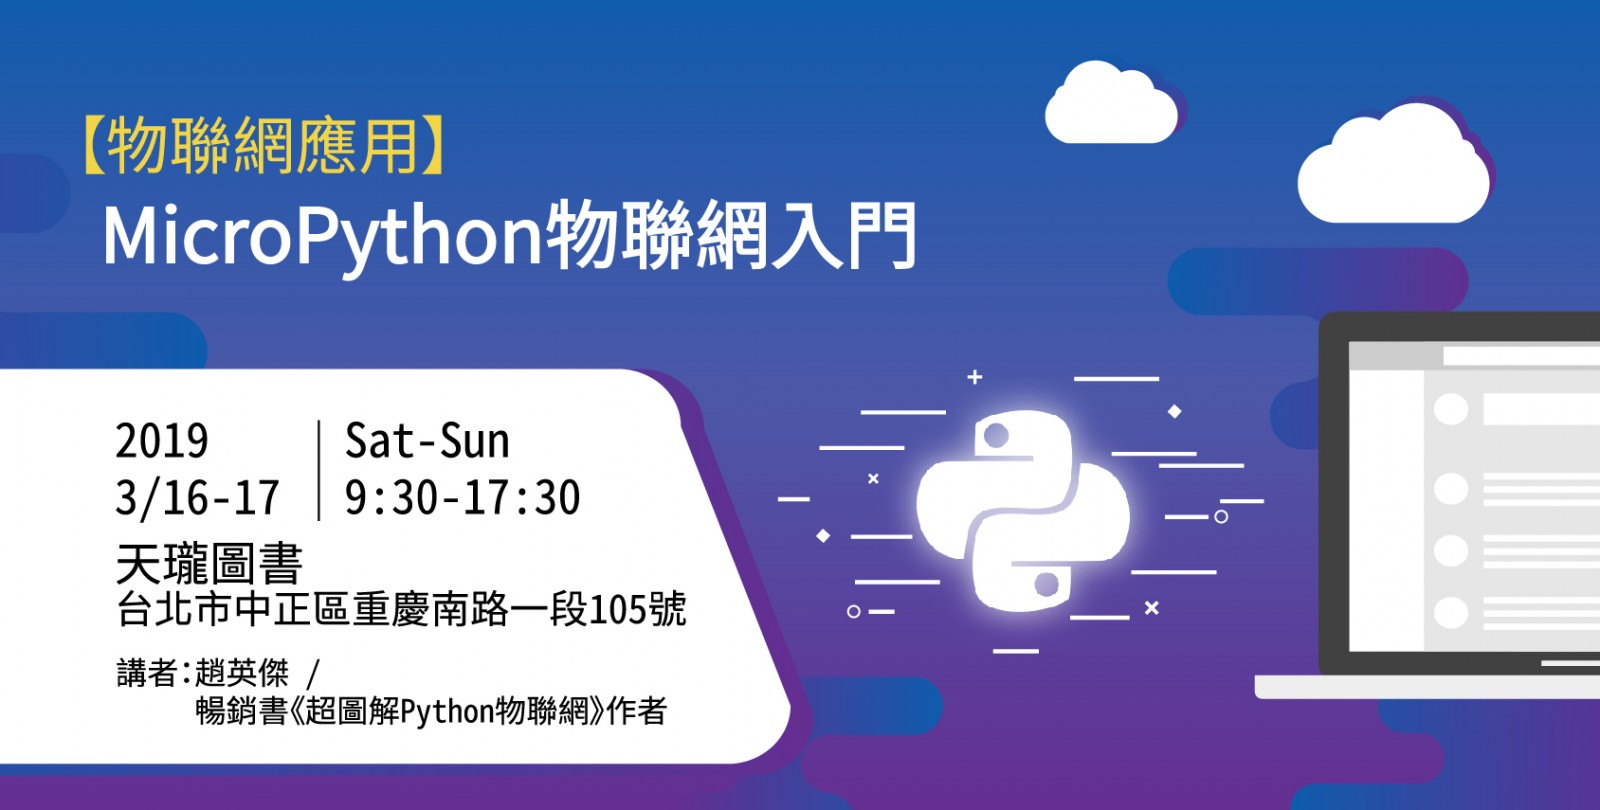 makerconf_2019_micropython_dm